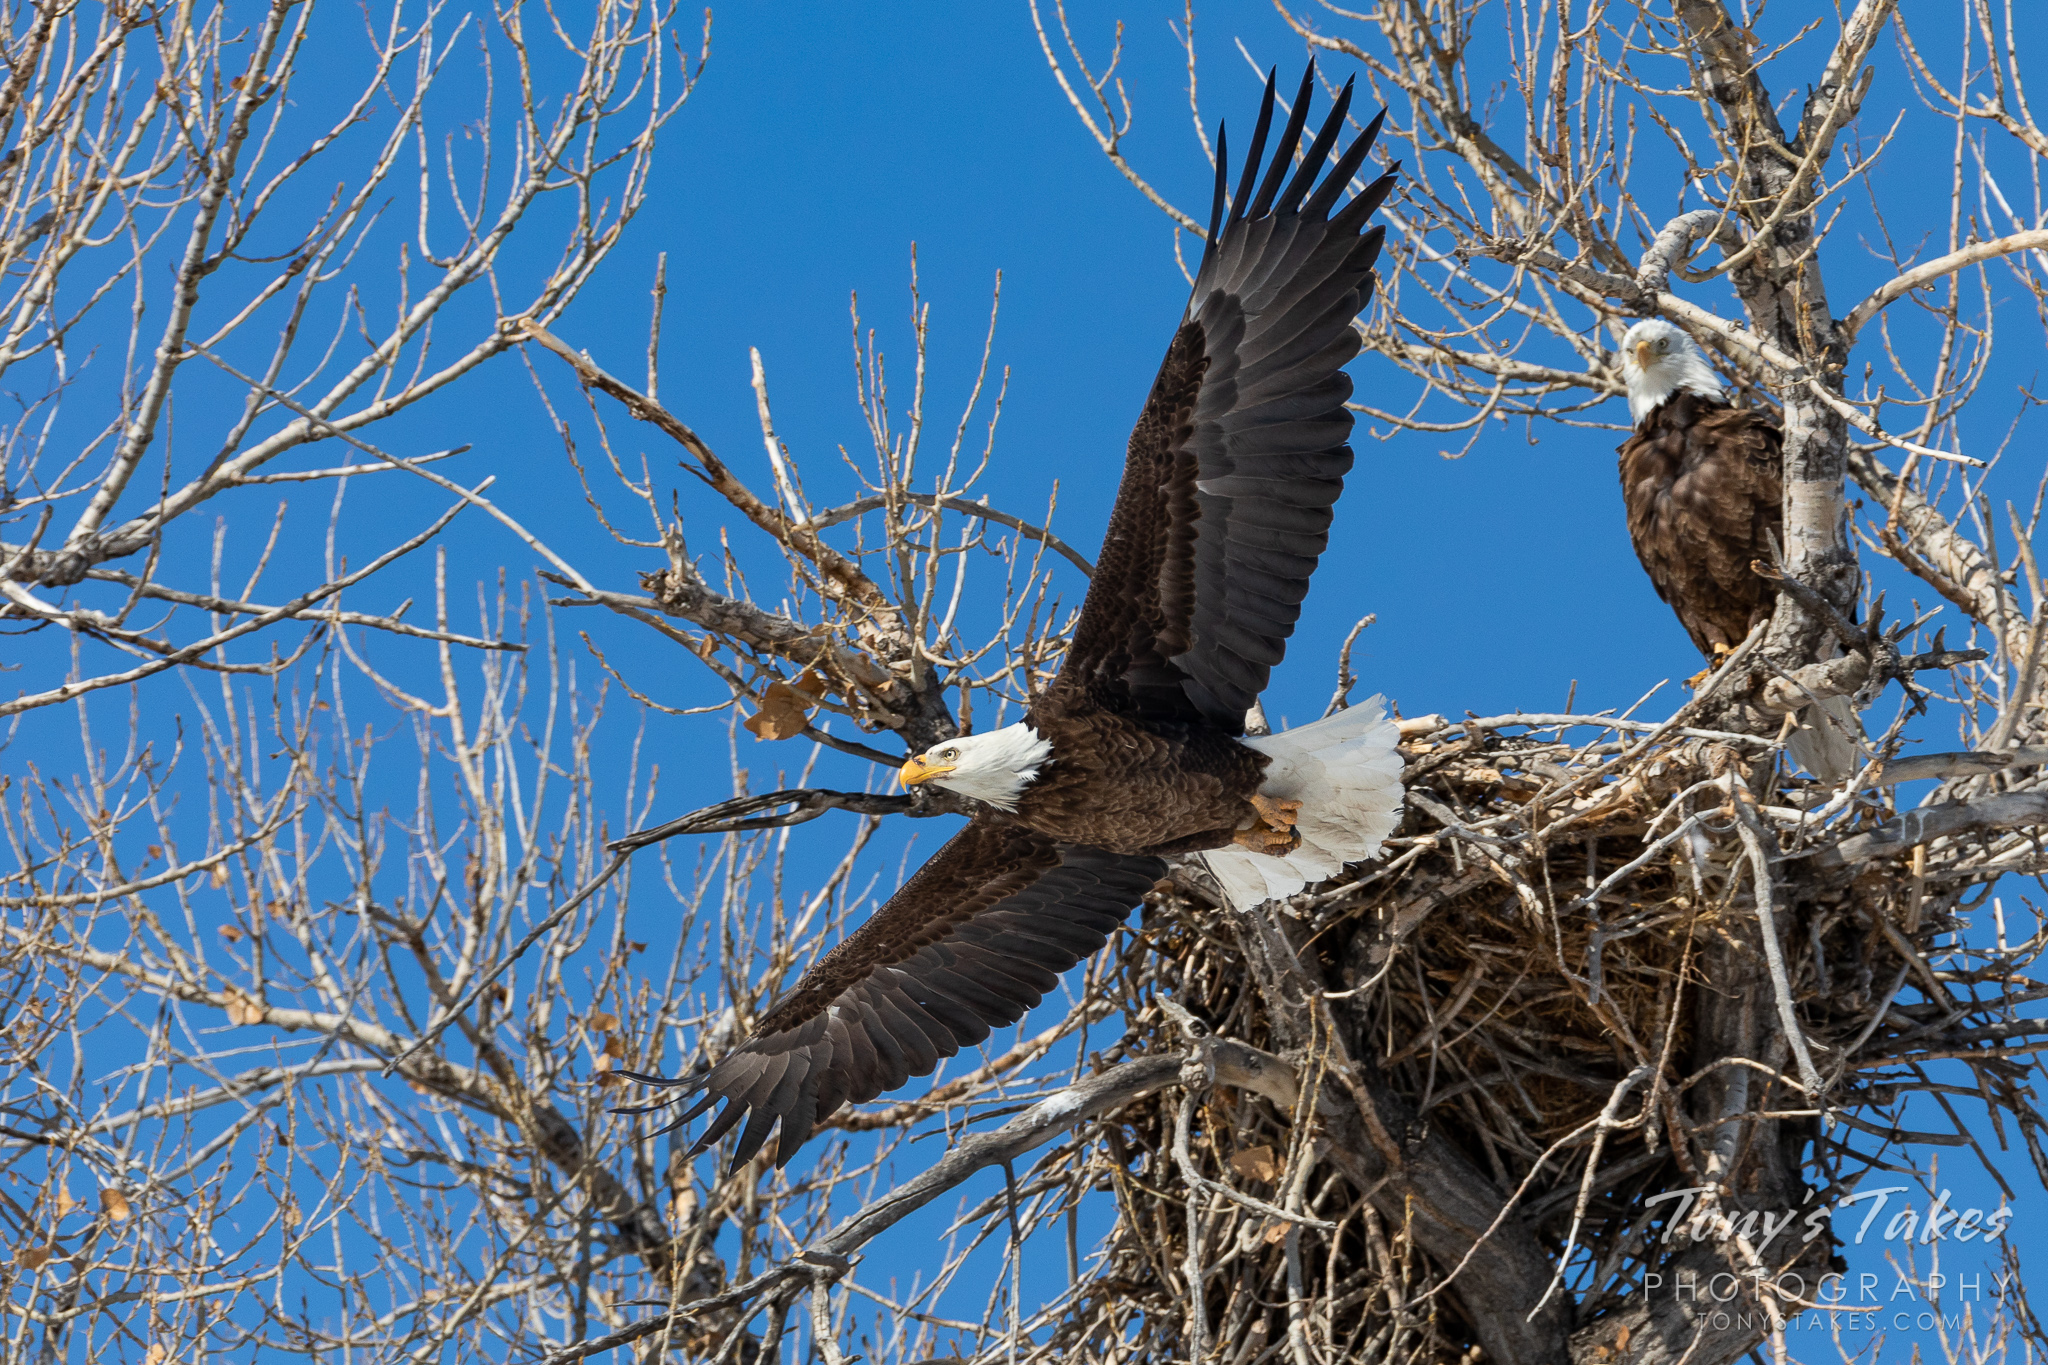 A male bald eagle departs its home while its mate looks on. (© Tony's Takes)